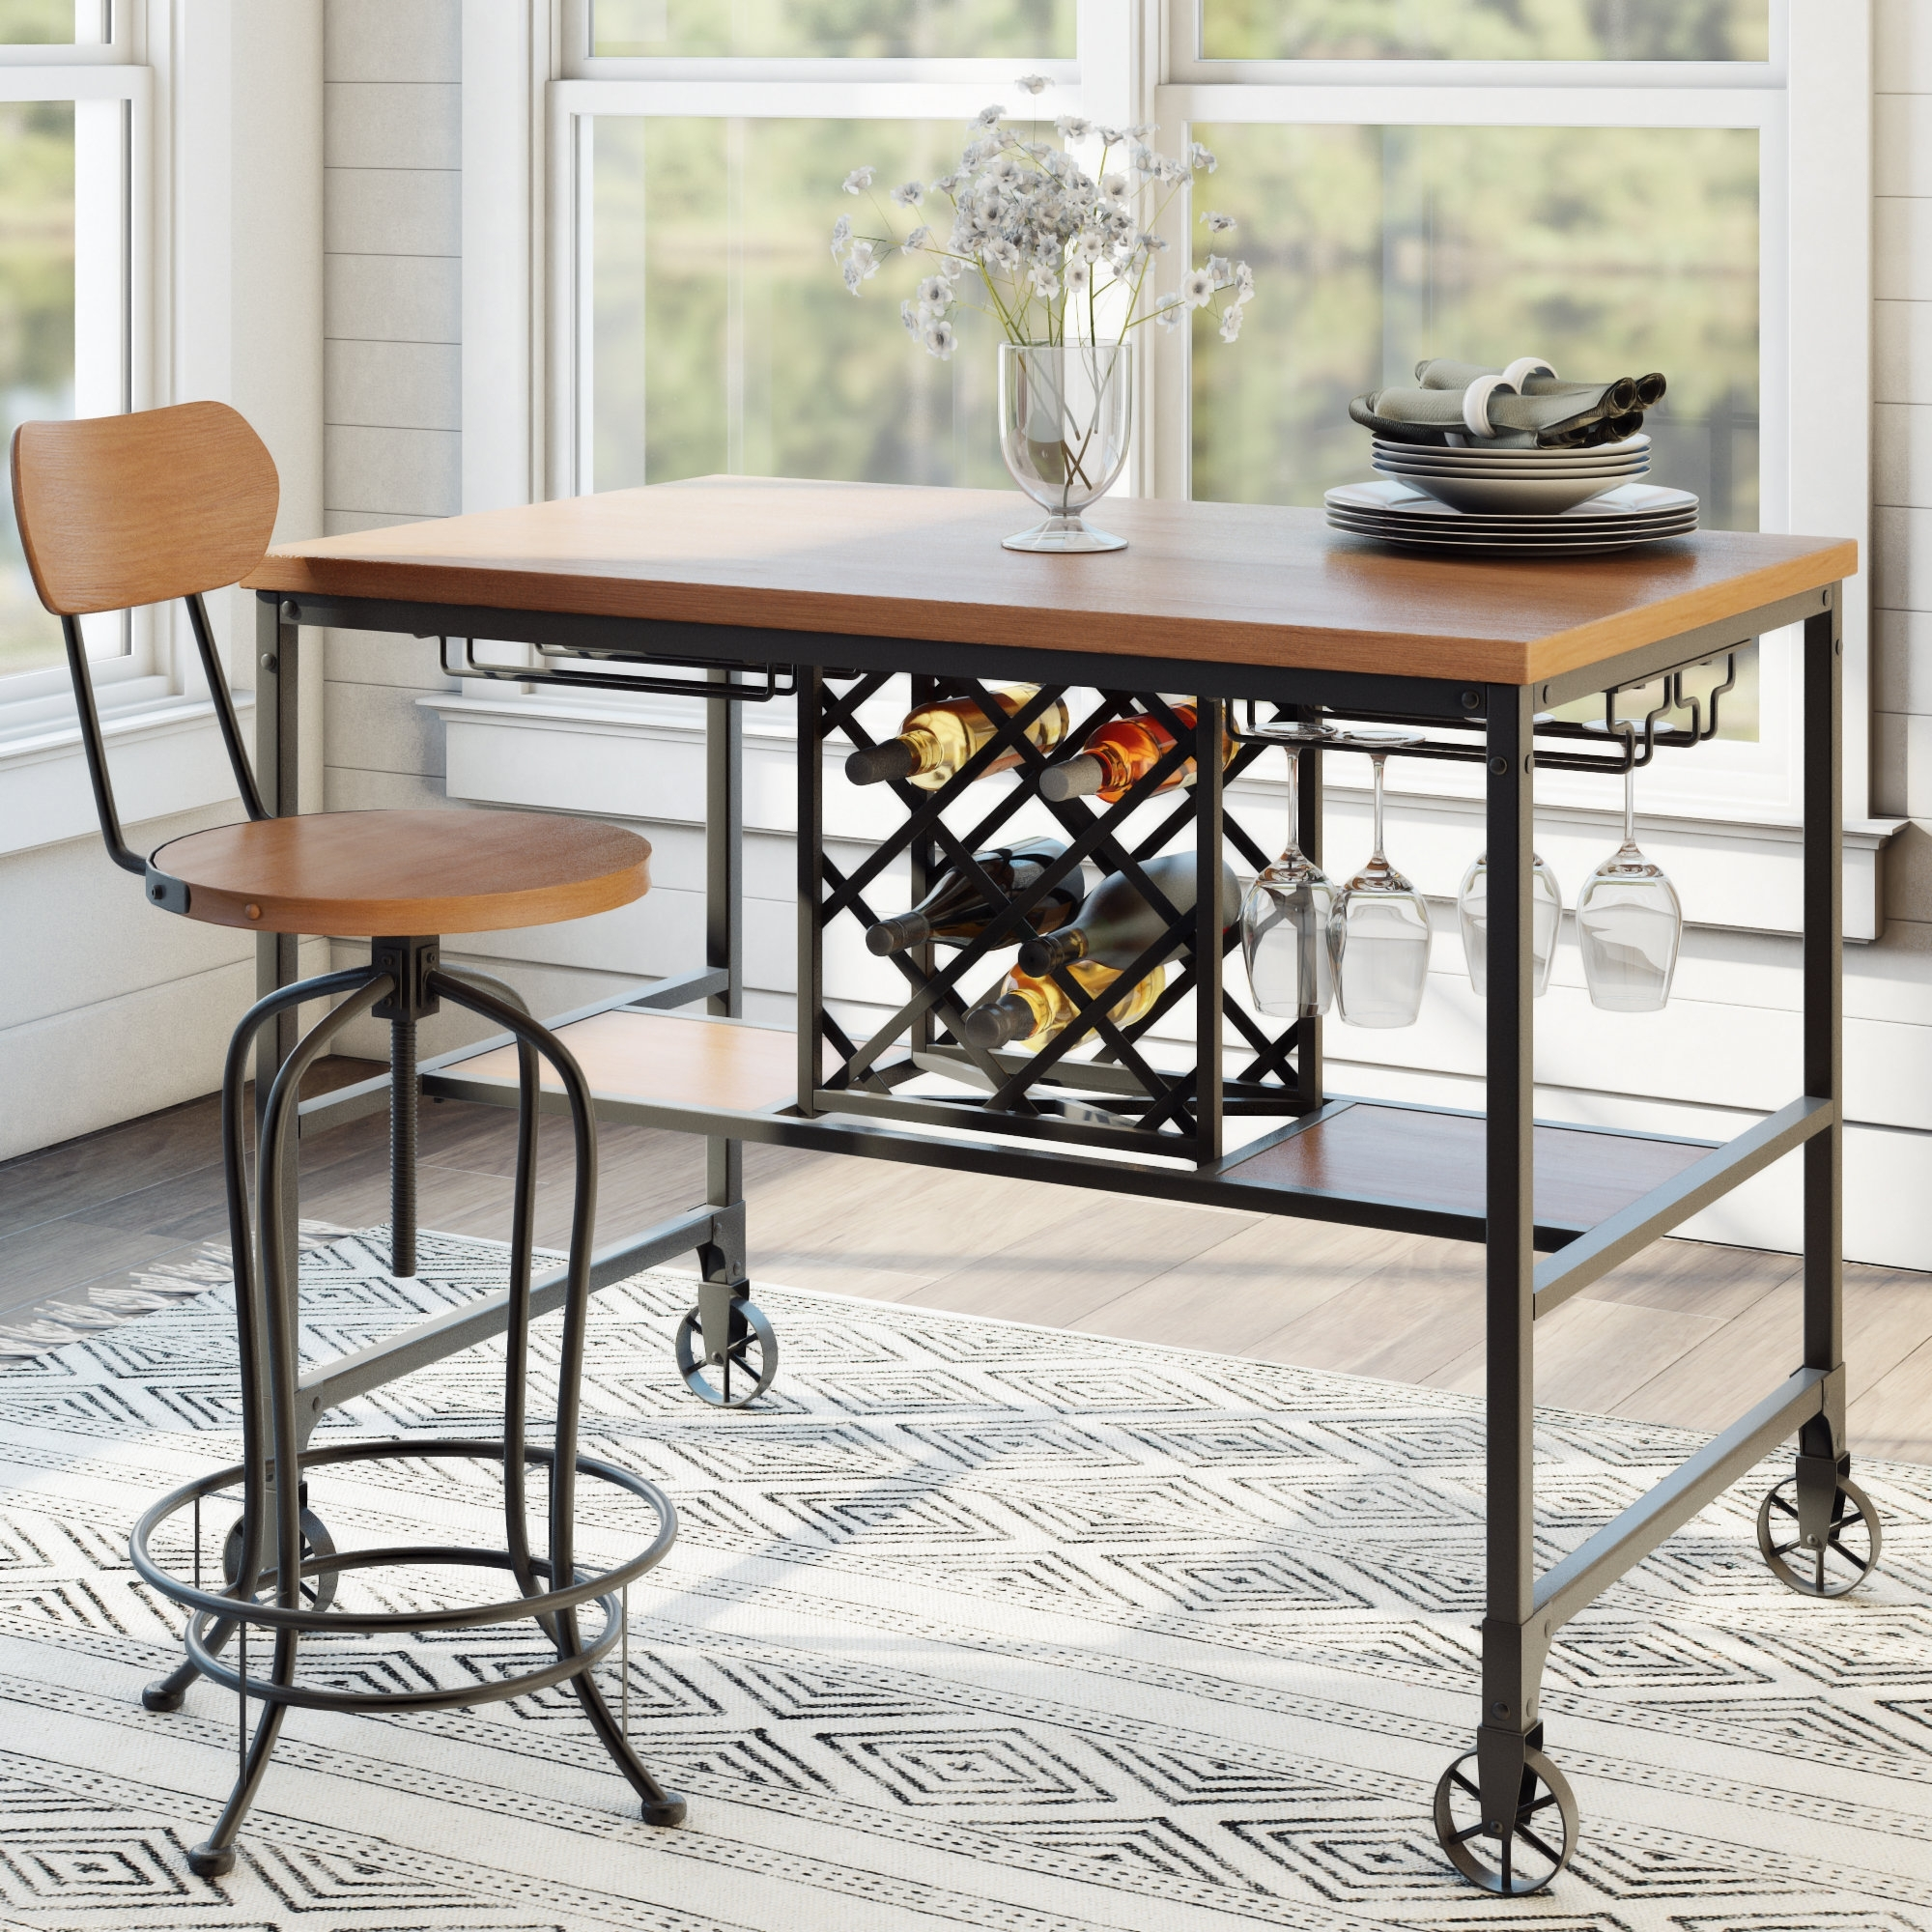 Laurel Foundry Modern Farmhouse Elberton 5 Piece Counter Height Intended For Most Up To Date Caira Black 5 Piece Round Dining Sets With Upholstered Side Chairs (Image 14 of 20)